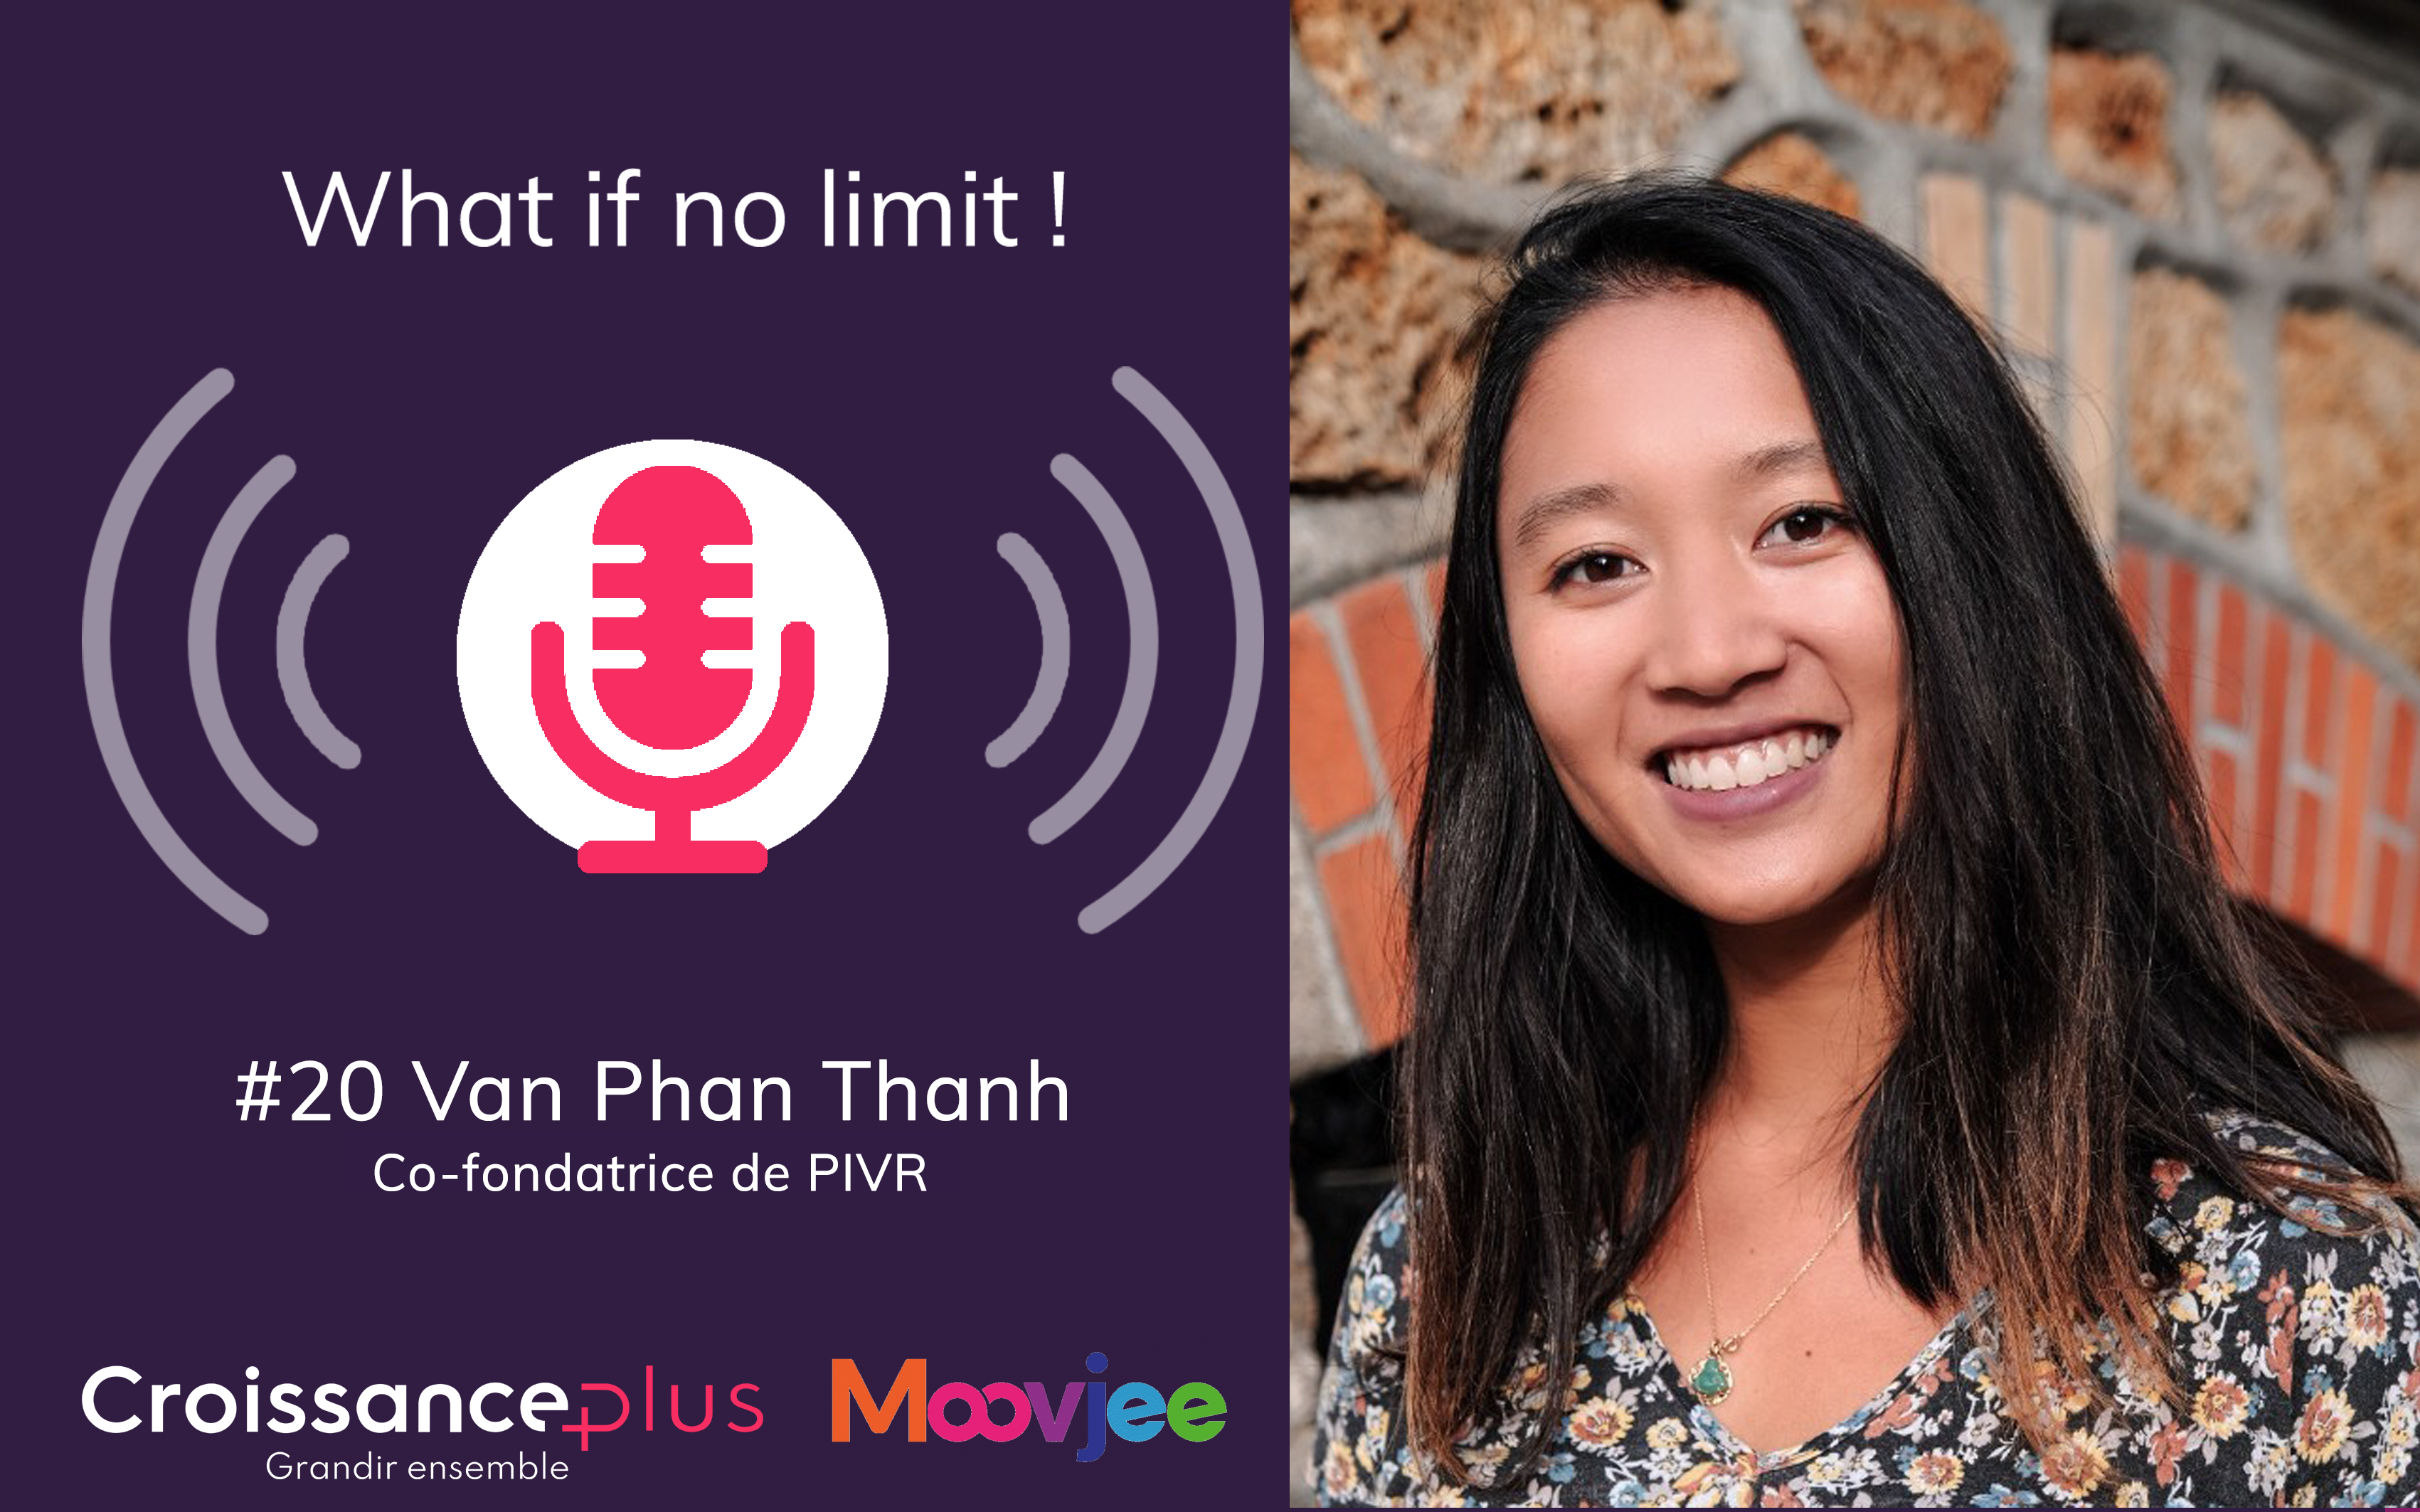 [Podcast] Nouvel épisode avec Van Phan Thanh, co-fondatrice de PIVR !